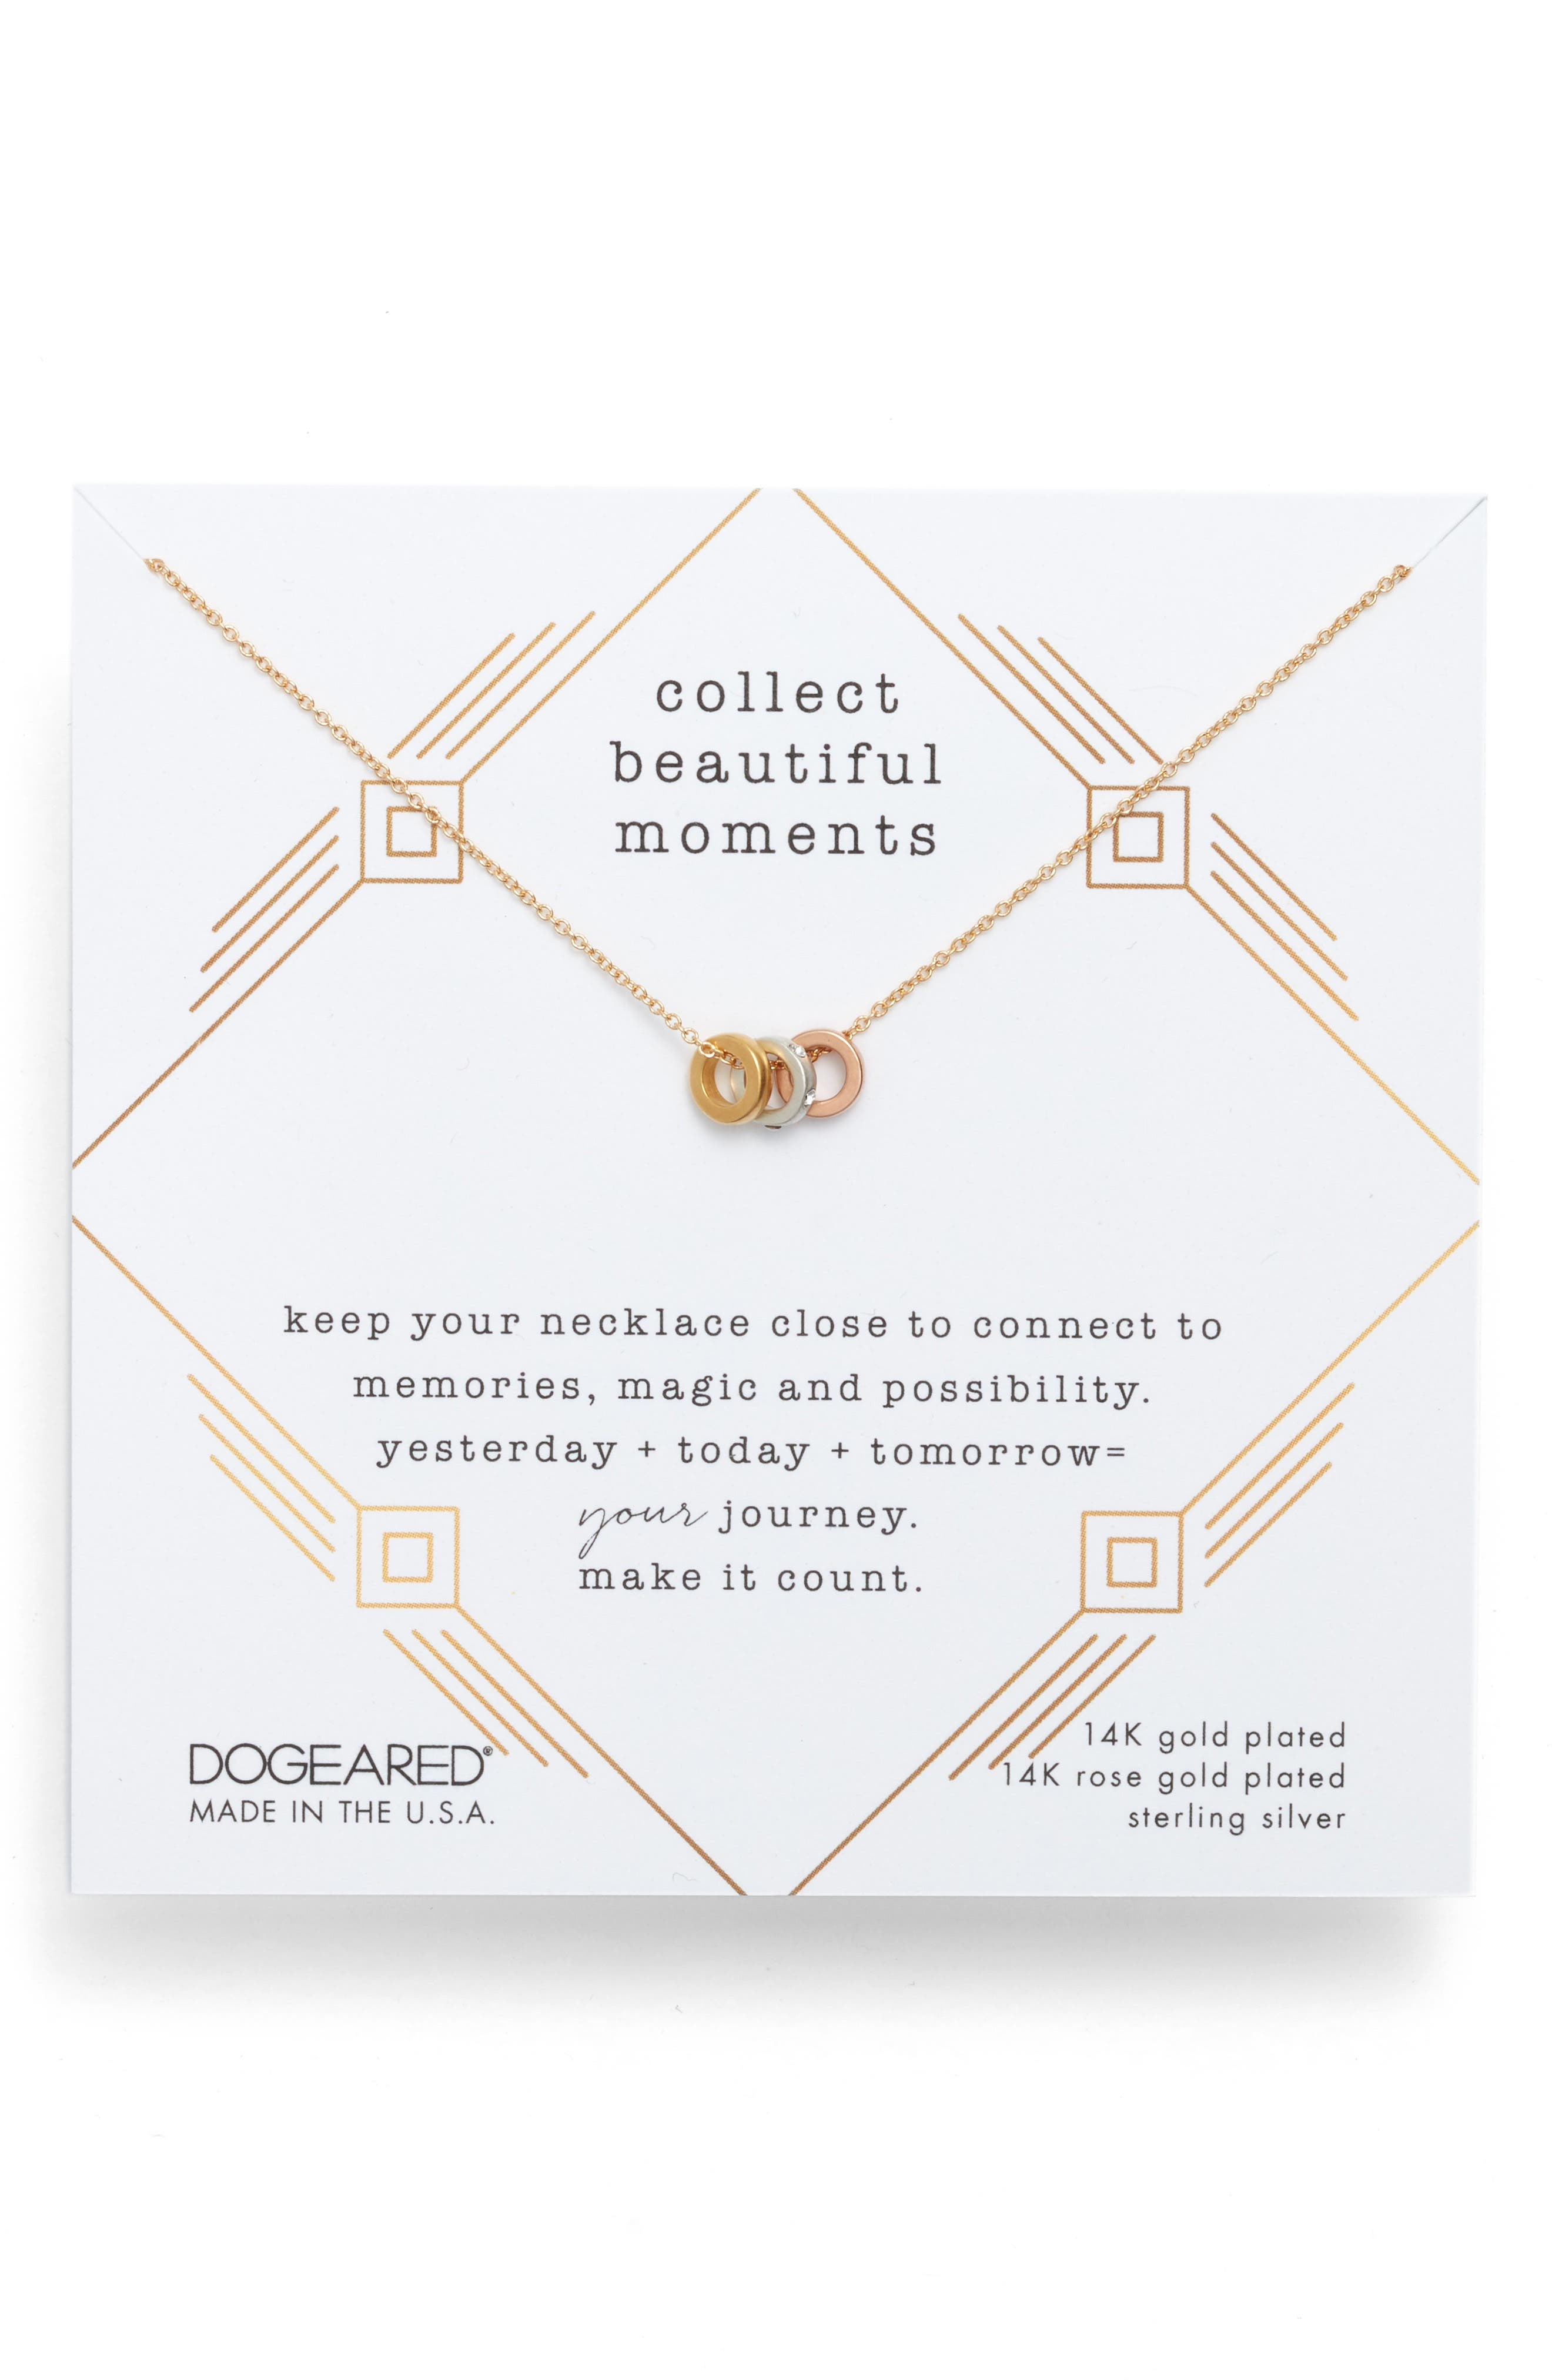 DOGEARED Collect Beautiful Moments Necklace In 14K Gold-Plated Sterling Silver, 16 in Mixed Metals